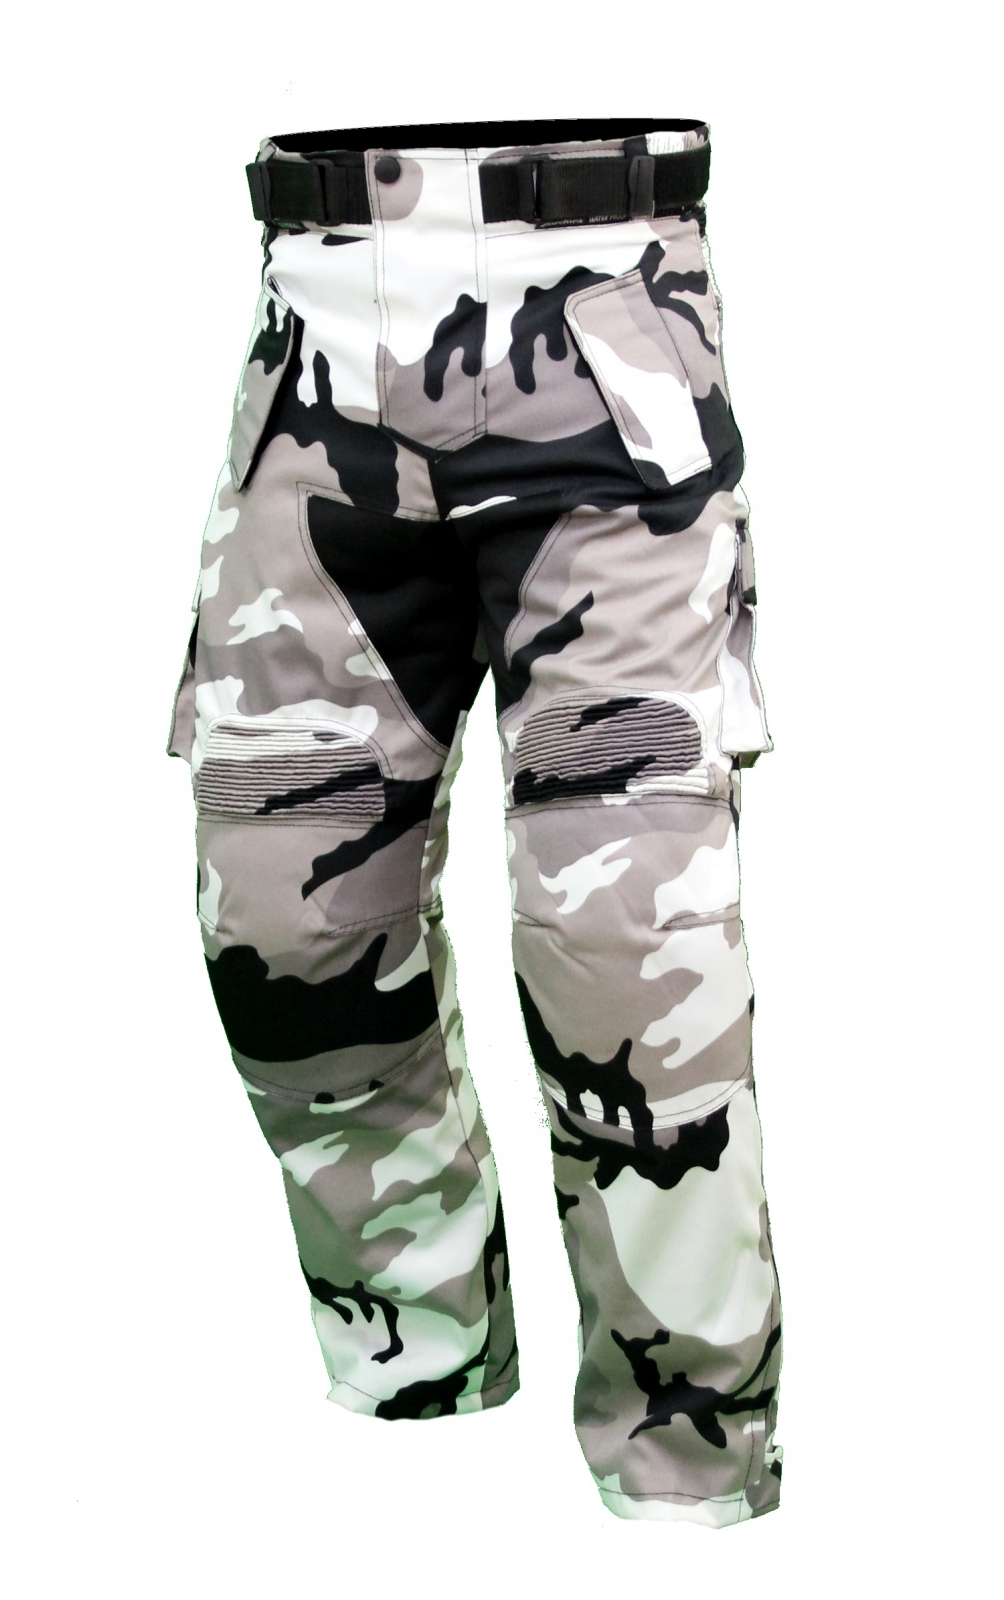 pantalon moto quad style camouflage militaire gris marpat urban. Black Bedroom Furniture Sets. Home Design Ideas